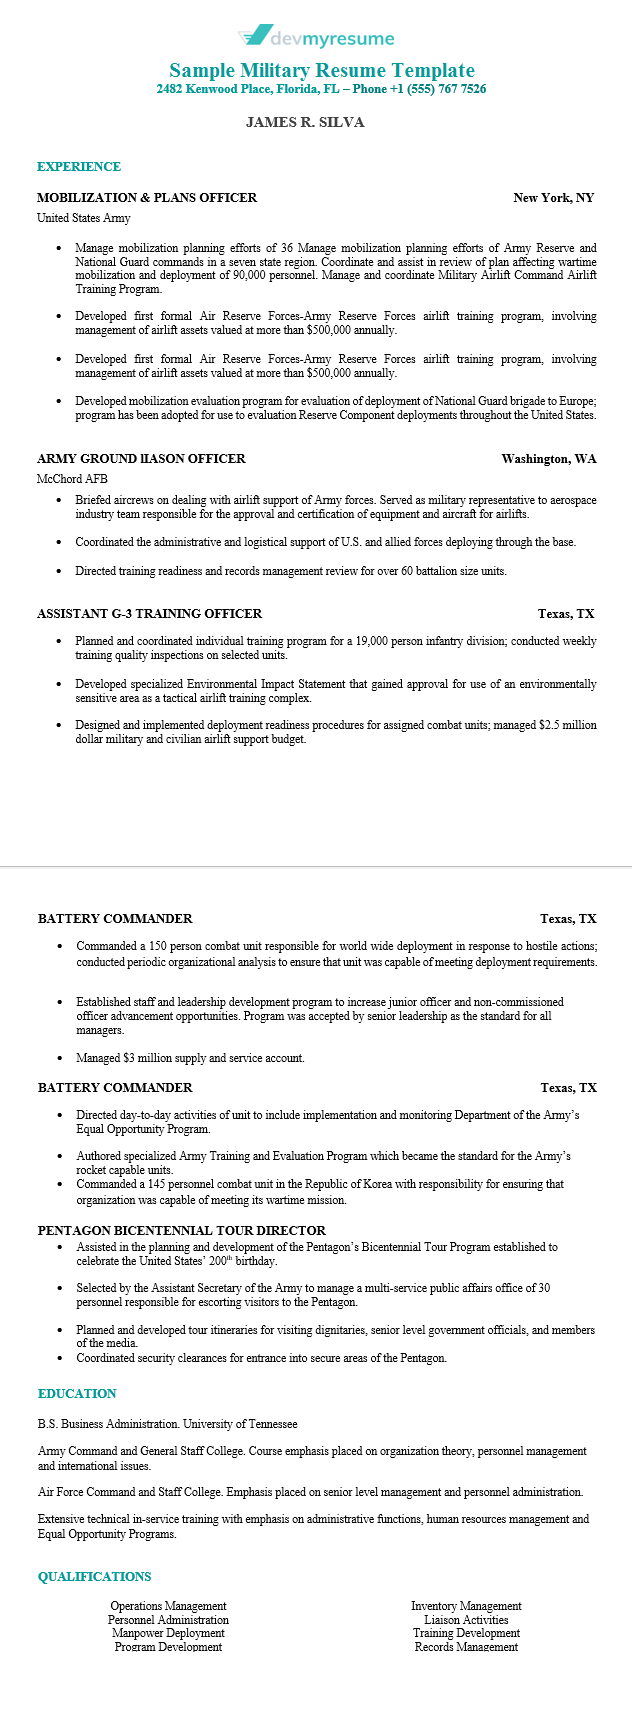 writing a military resumes